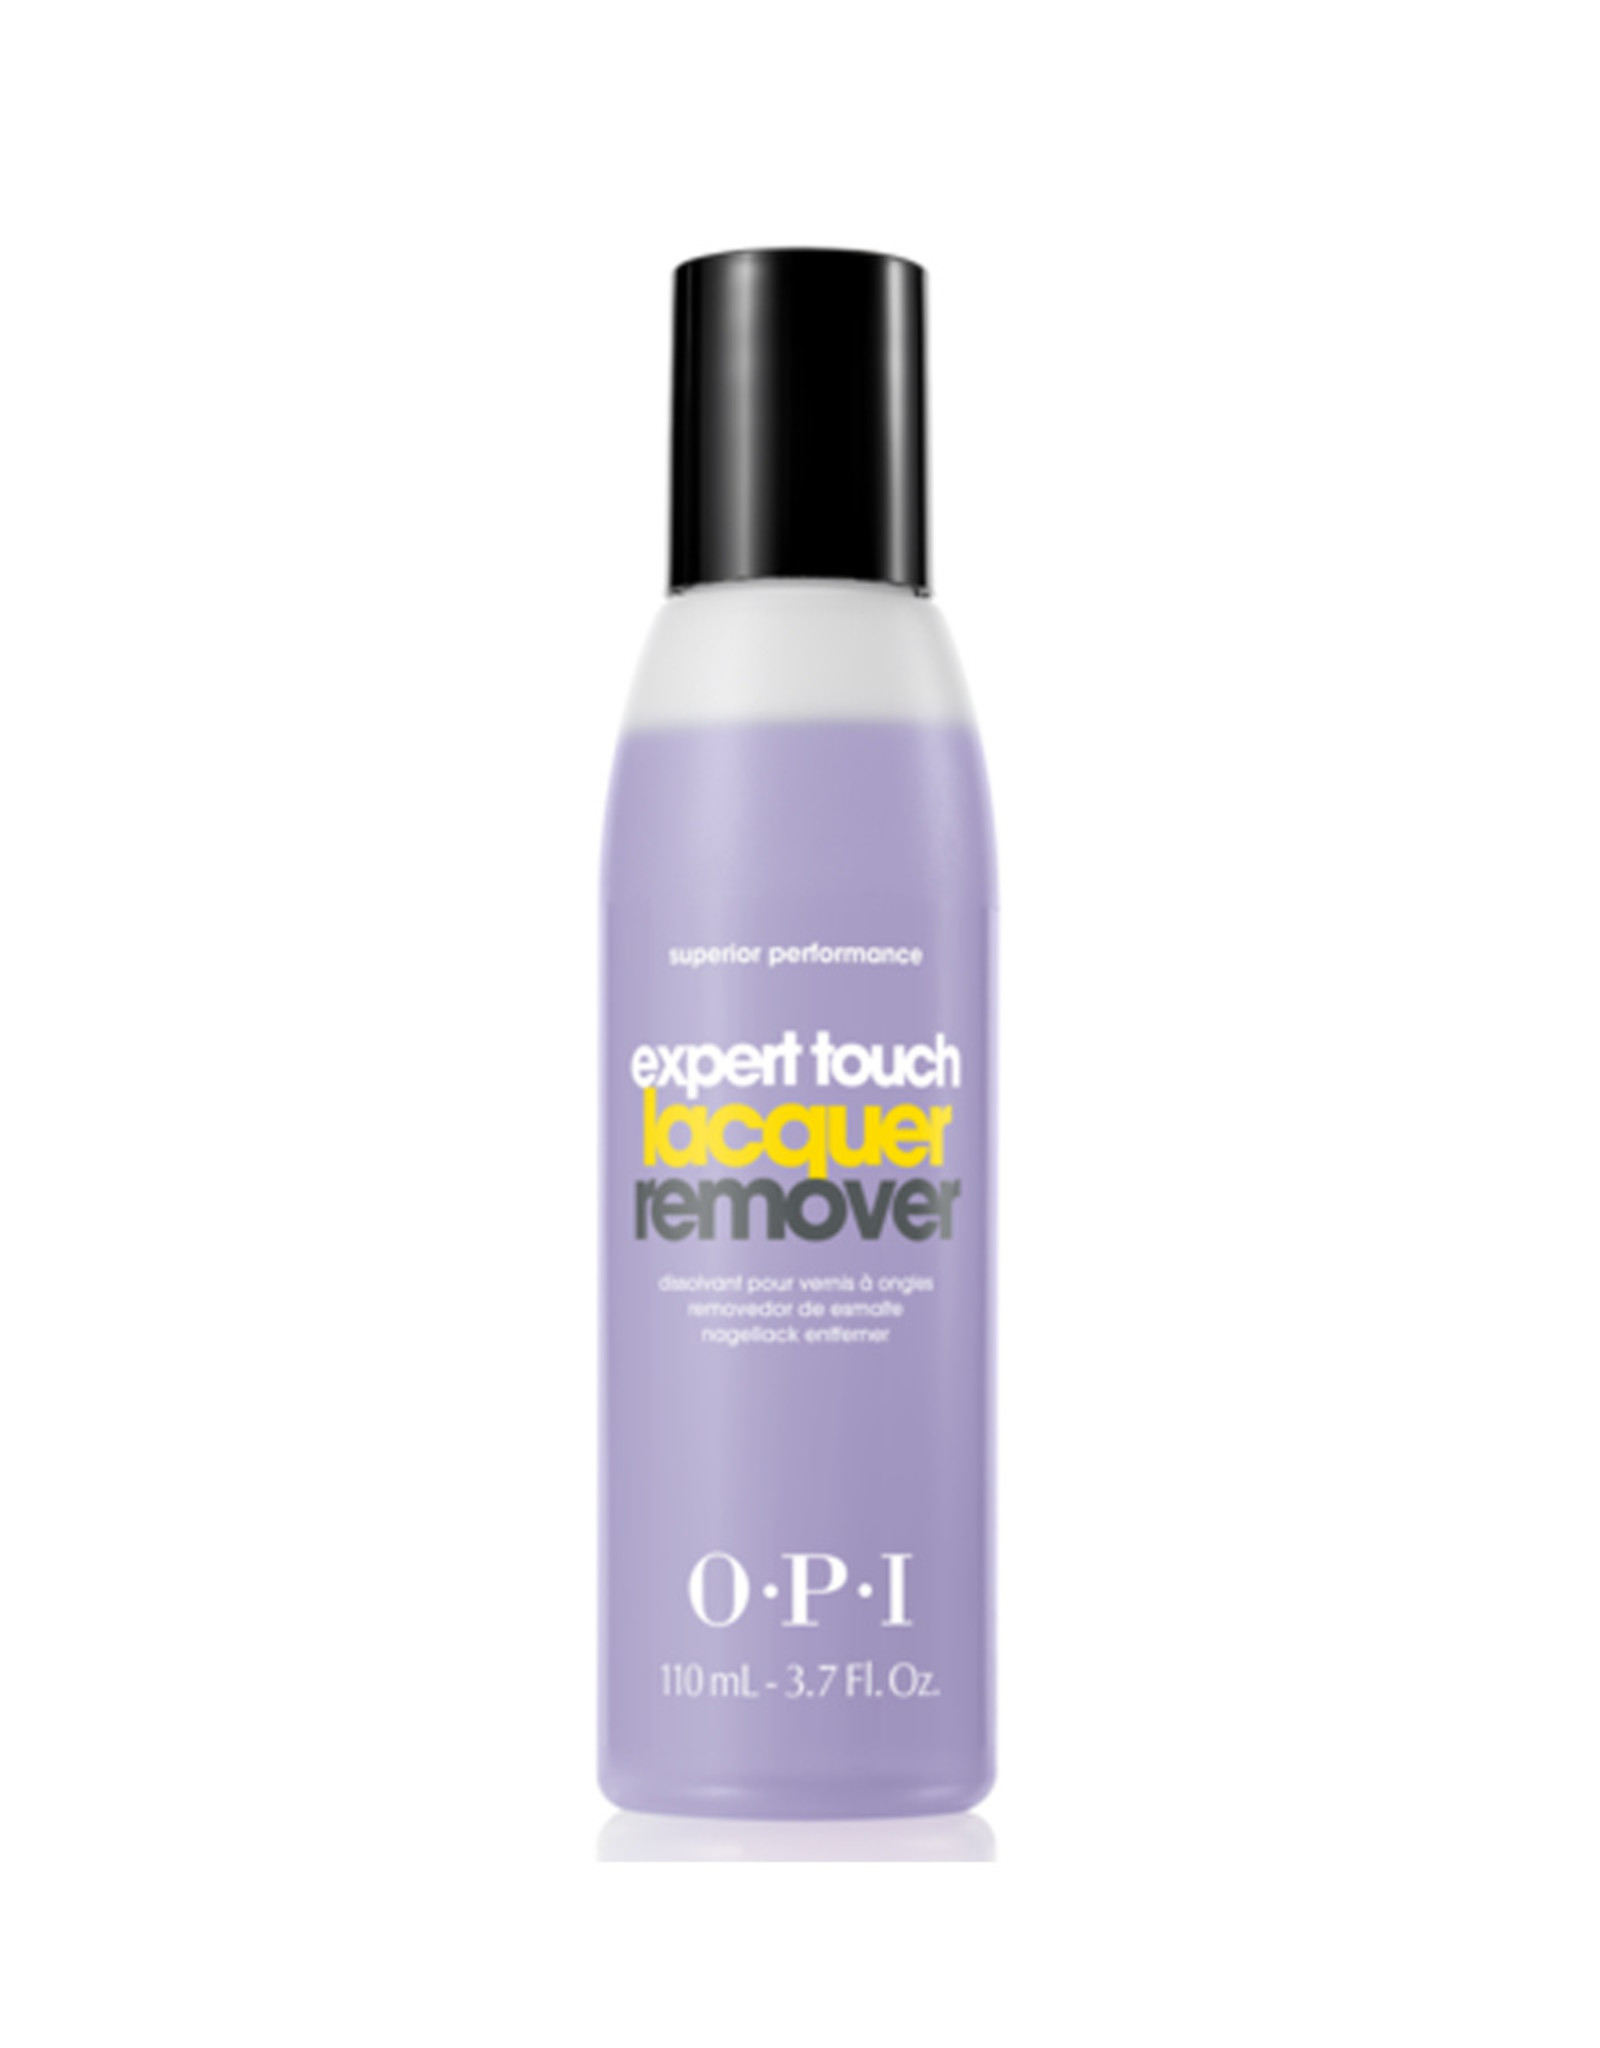 OPI EXPERT TOUCH LACQUER REMOVER 110 ML